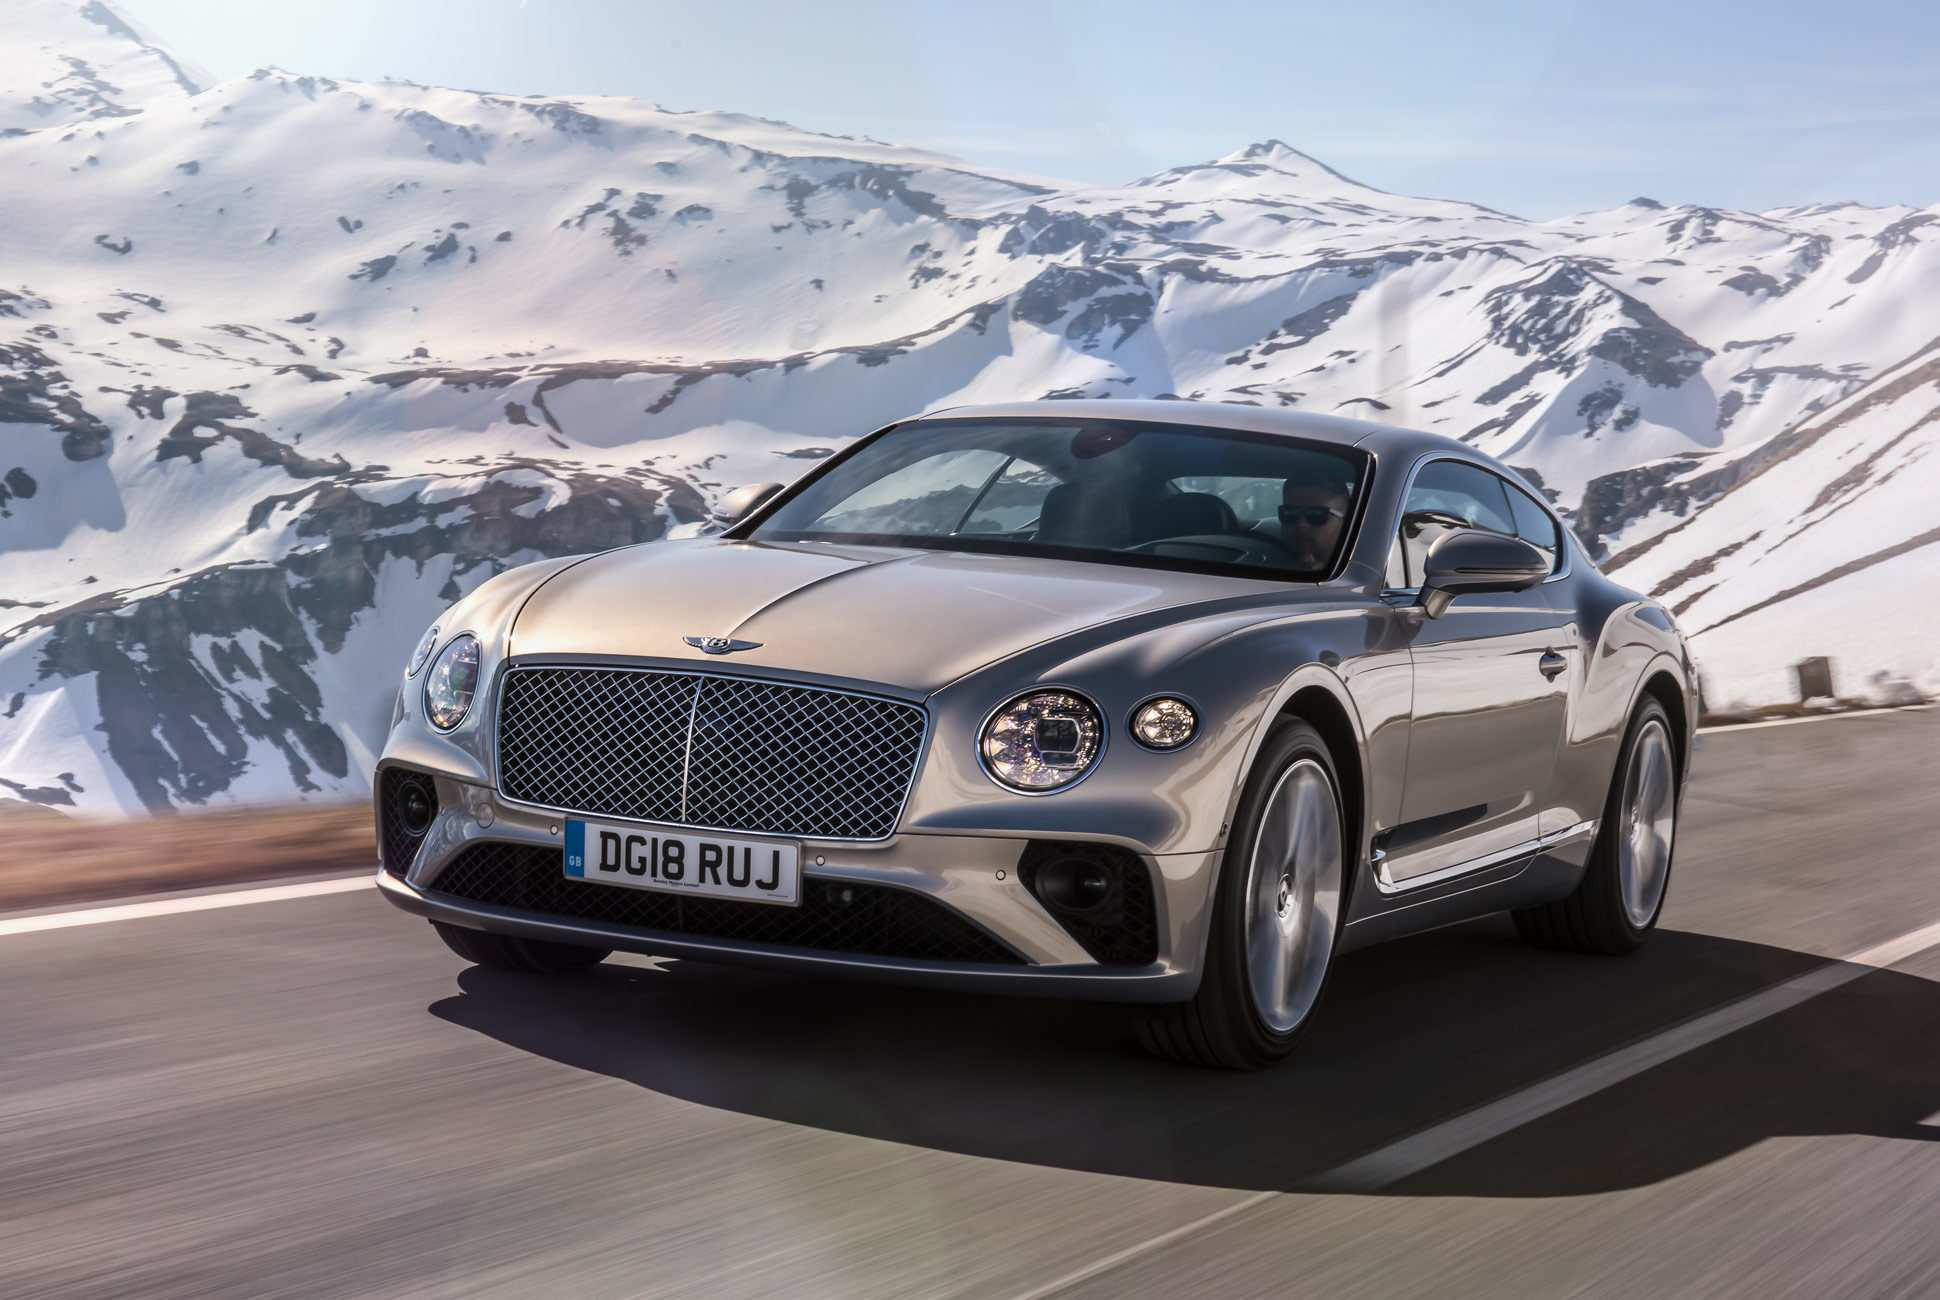 99 Gallery of 2019 Bentley Continental Gt Weight Rumors by 2019 Bentley Continental Gt Weight